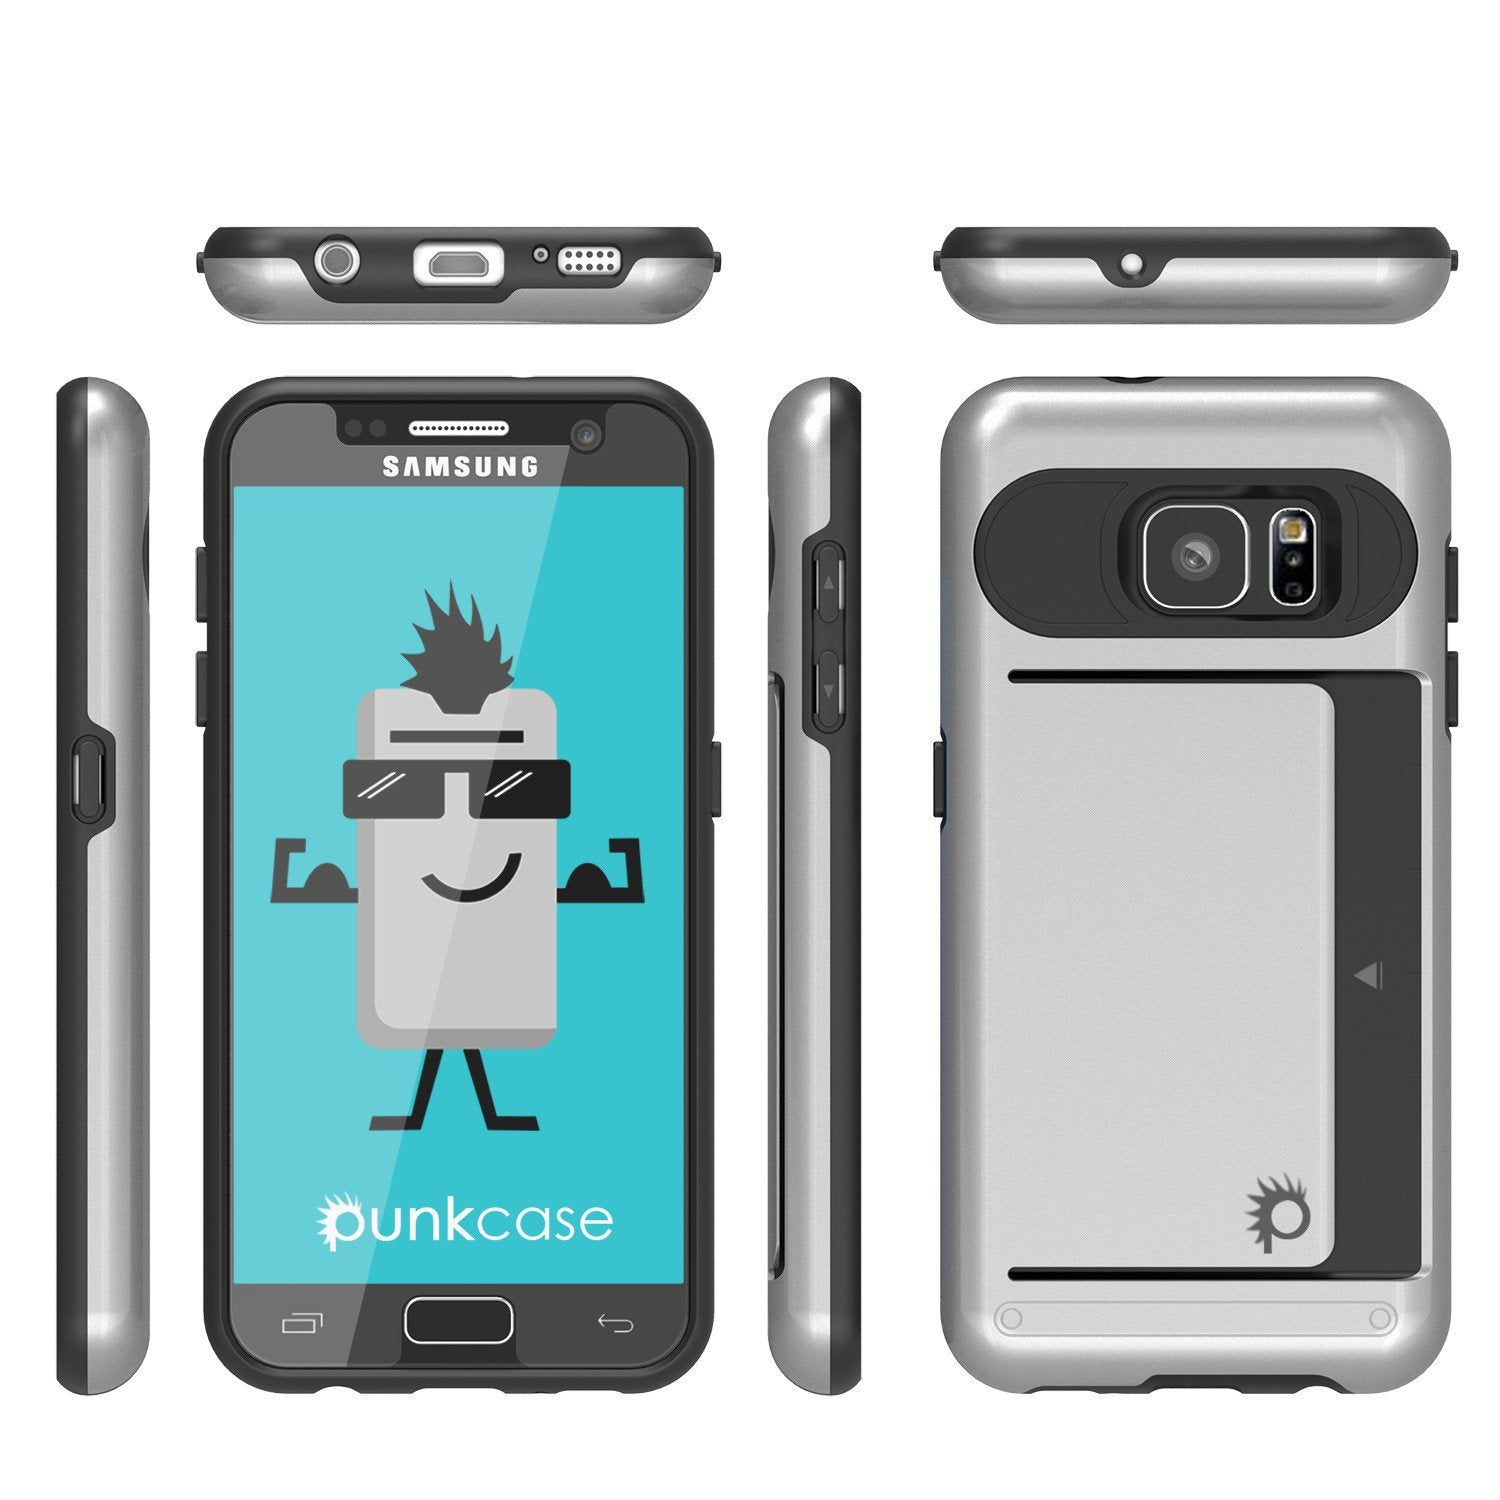 Galaxy S7 EDGE Case PunkCase CLUTCH Silver Series Slim Armor Soft Cover Case w/ Screen Protector